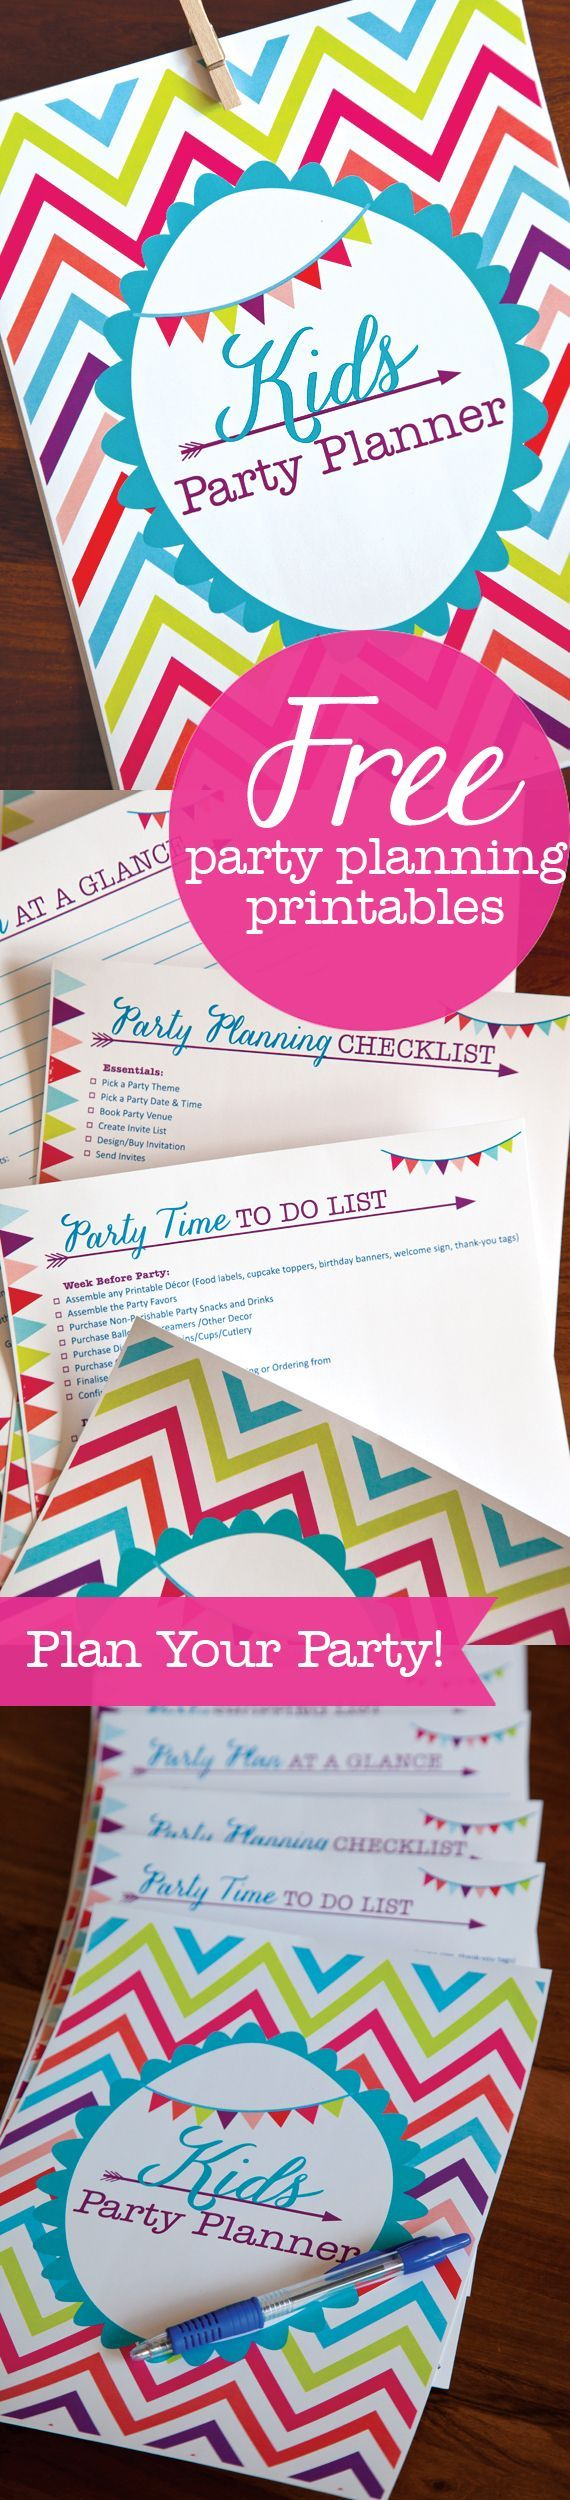 Free Kids Party Planning Printables | Organize your plan for the best party with checklists